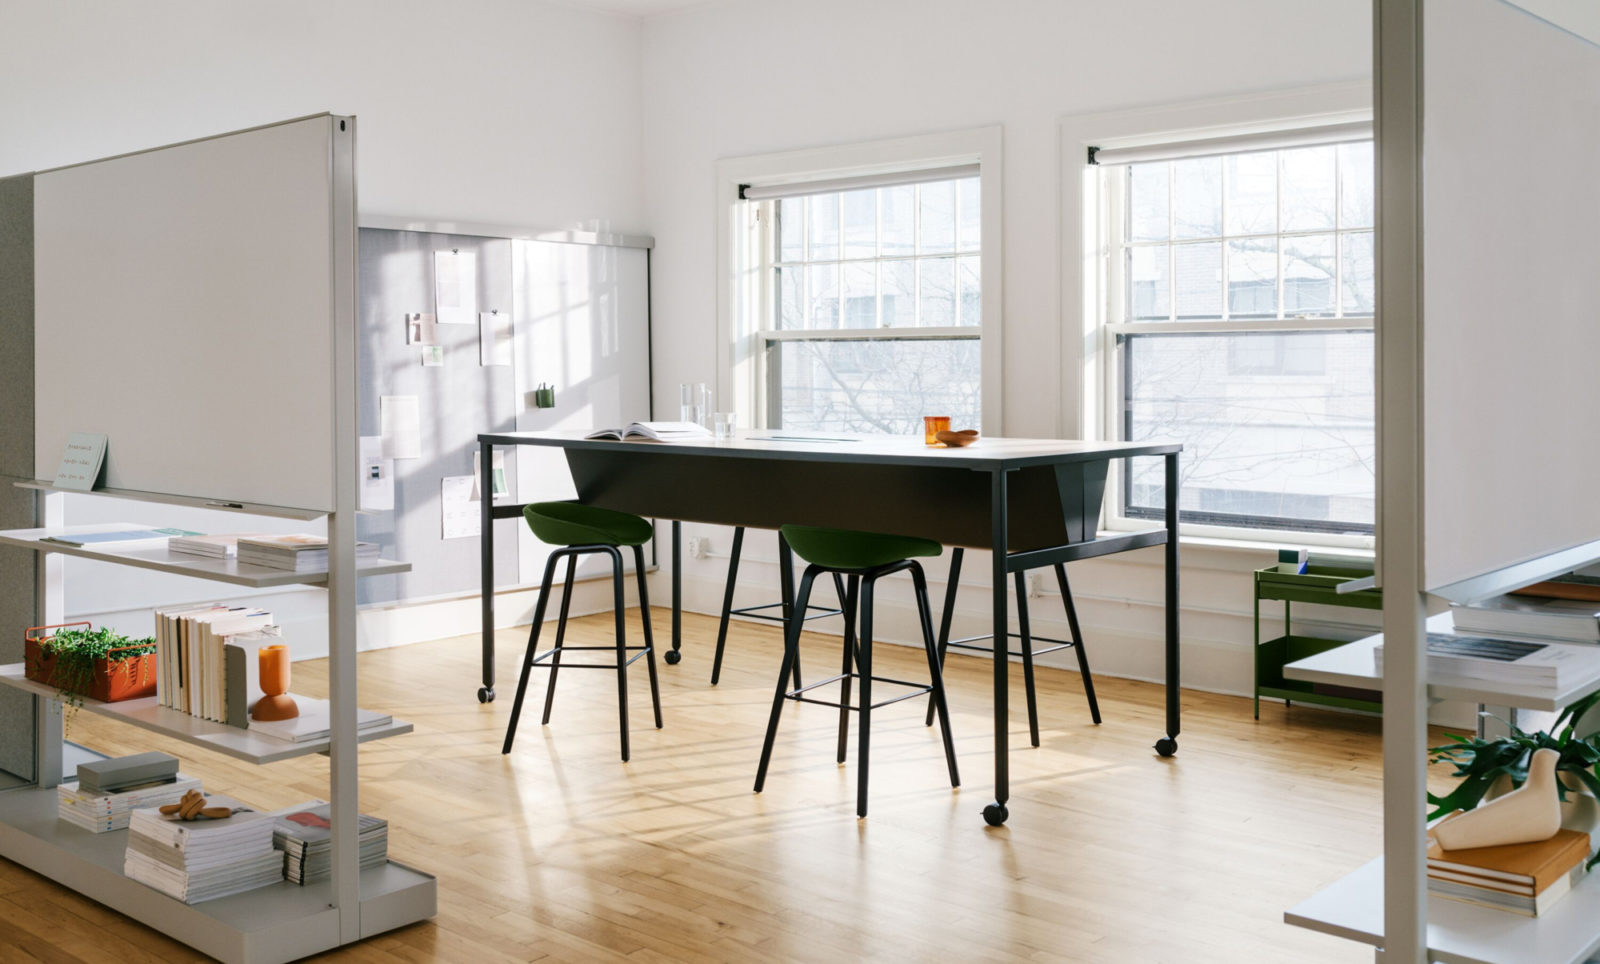 Oe1 product gallery 11